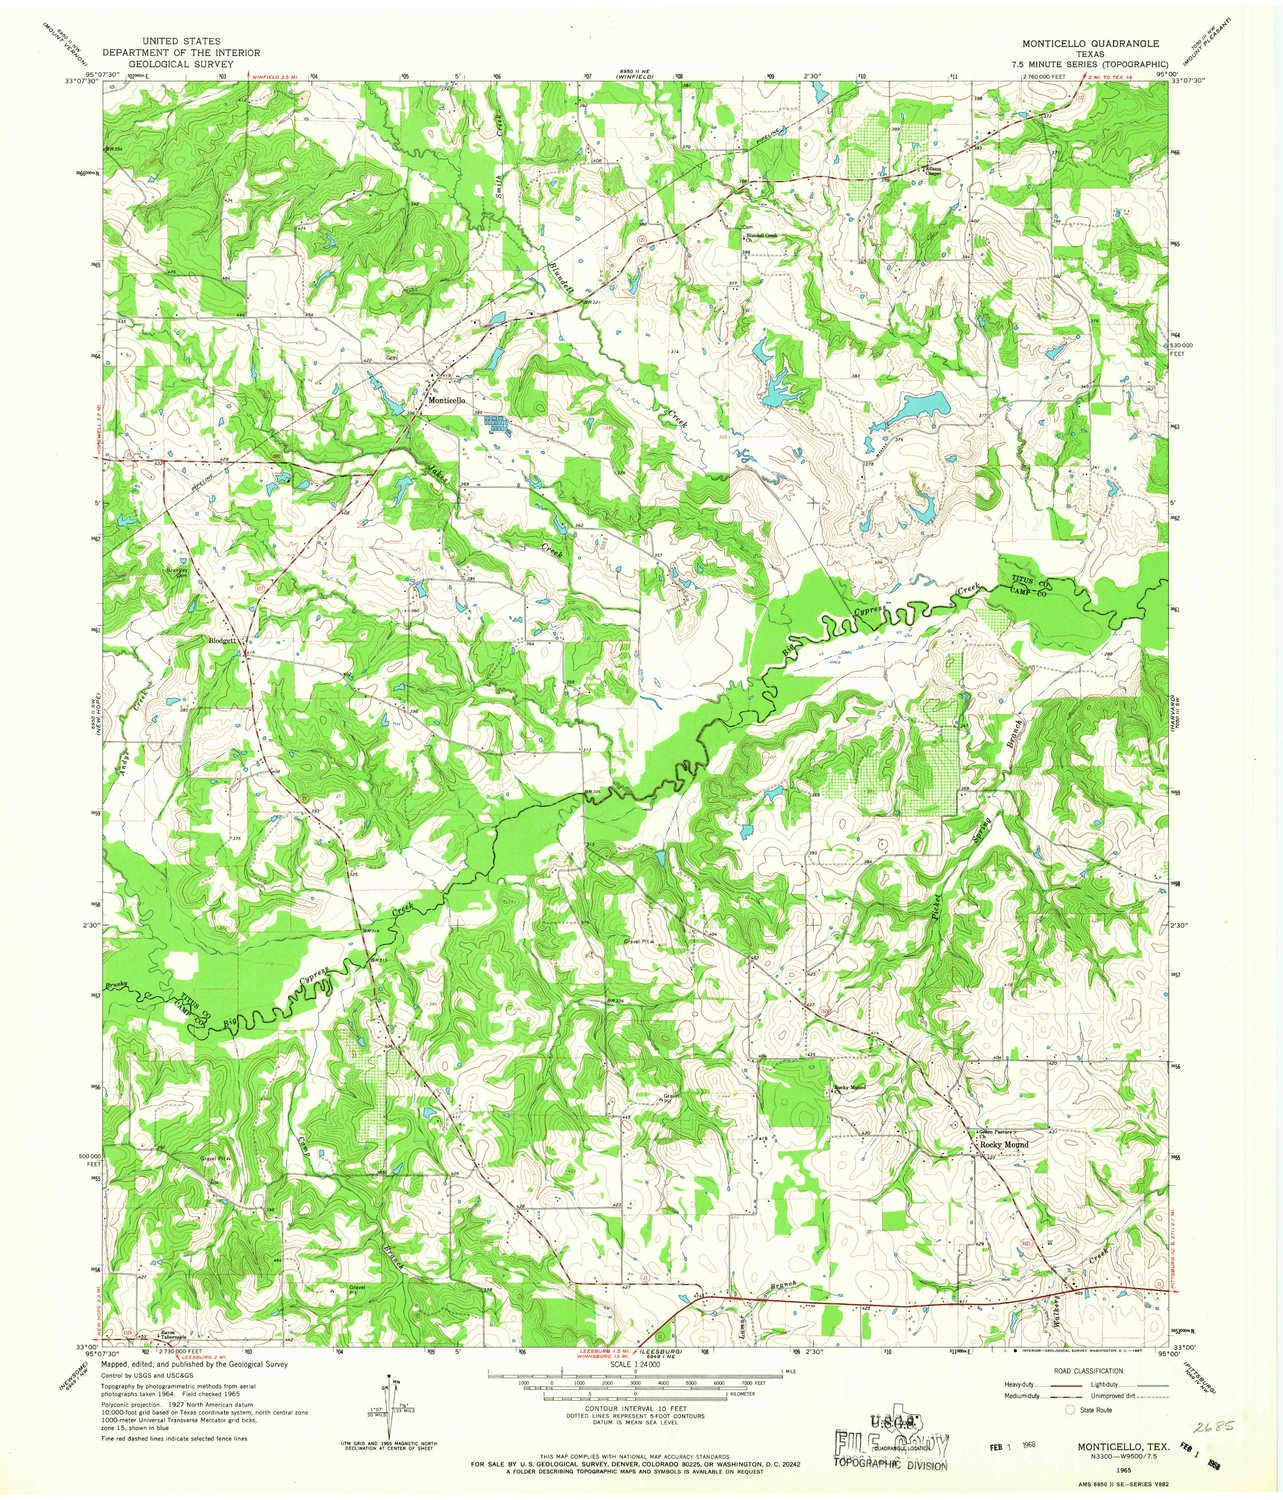 Amazon.com : YellowMaps Monticello TX topo map, 1:24000 ... on interstate 30 map, interstate map of mississippi and alabama, interstate 85 map, lincoln way map, new jersey route 1 map, interstate highway map, interstate 526 map, interstate 75 map, interstate 70 map, interstate 27 map, us highway 78 map, interstate 80 map, interstate 25 map, interstate 10 map, interstate 422 map, interstate 26 map, interstate 44 map, interstate 74 map,